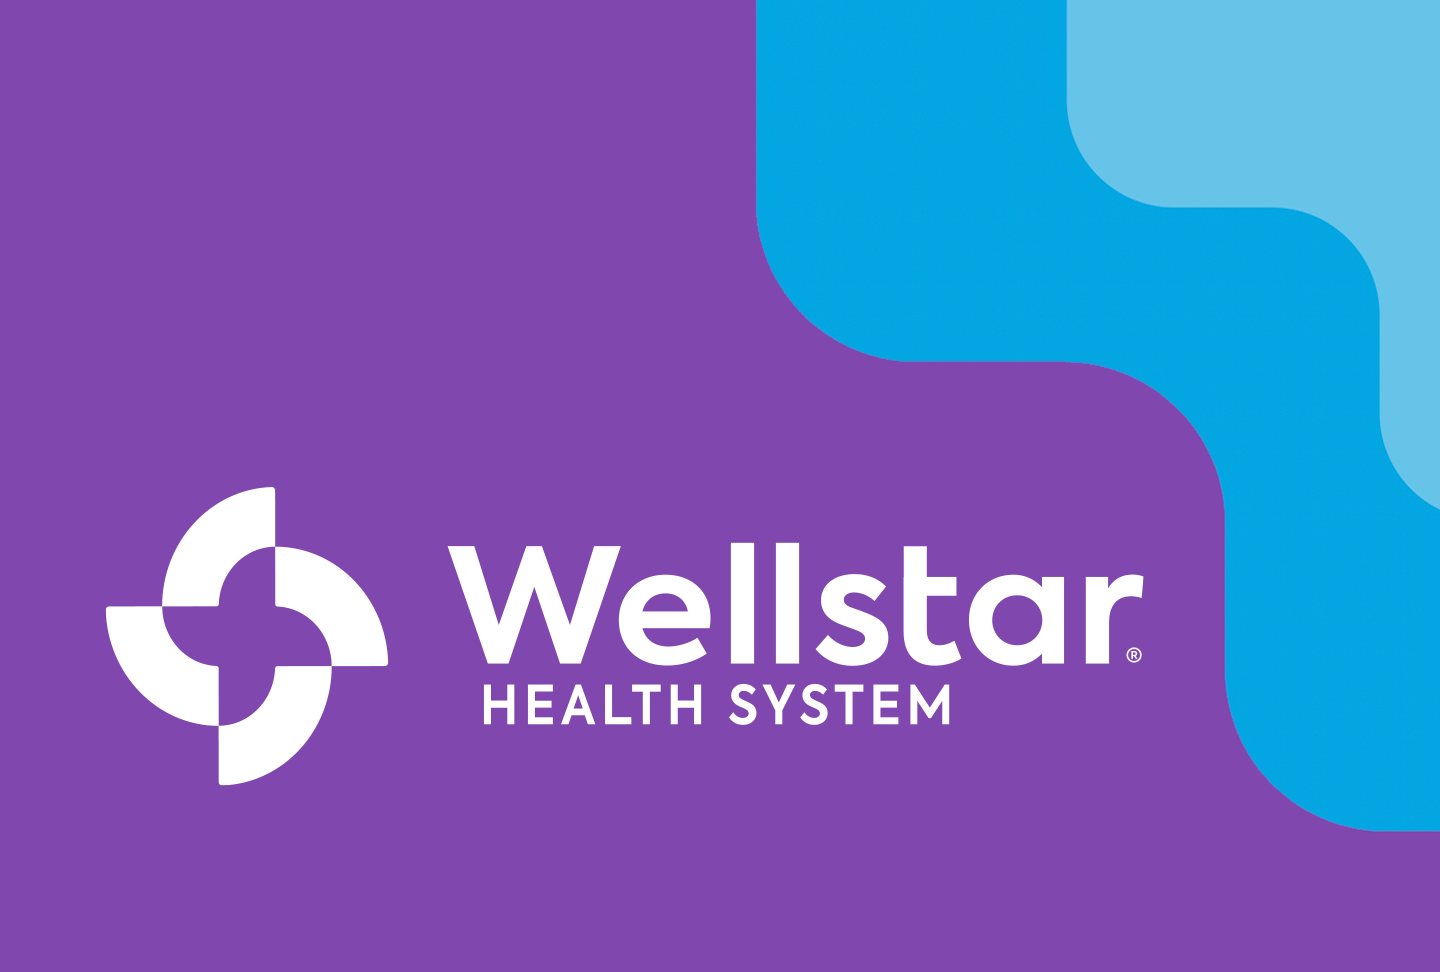 Wellstar Moving Forward with New Branding Image